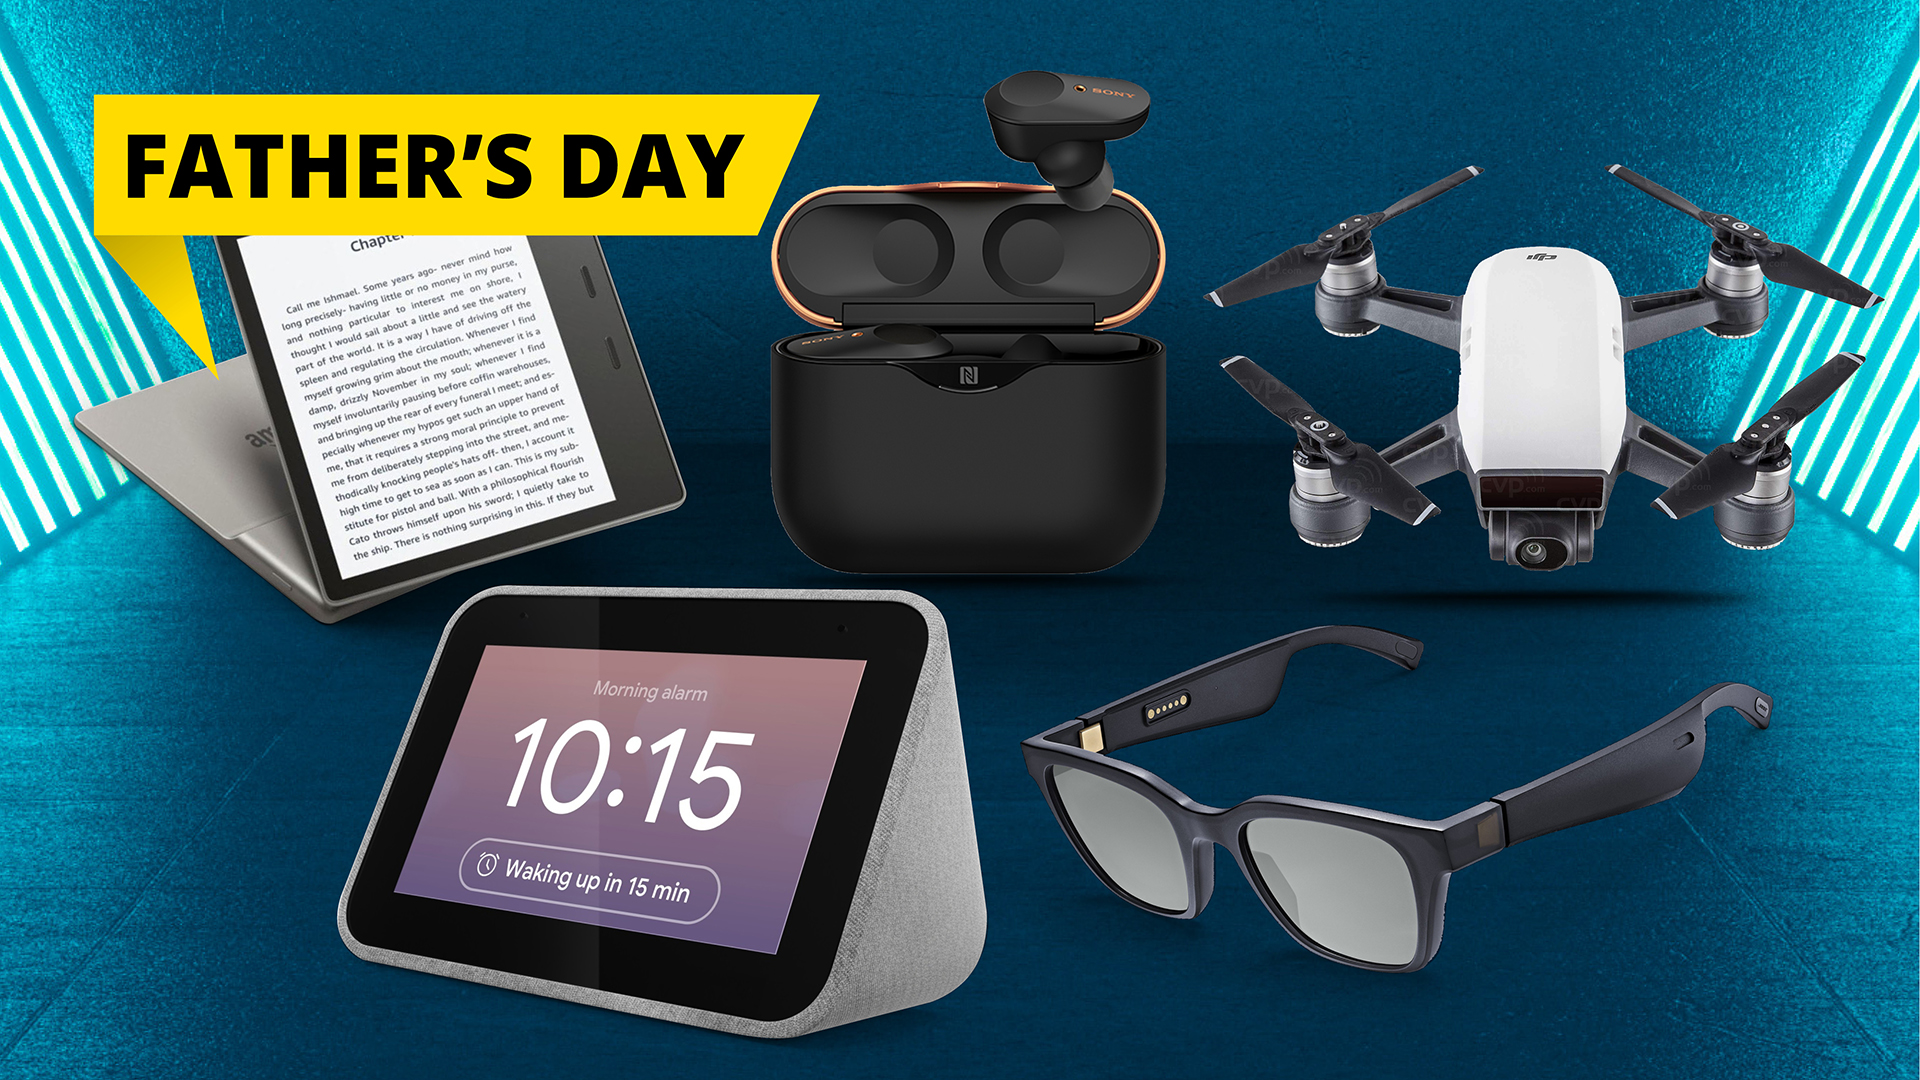 Father's Day gift ideas for 2019: 15 great gifts for the tech-savvy Aussie dad